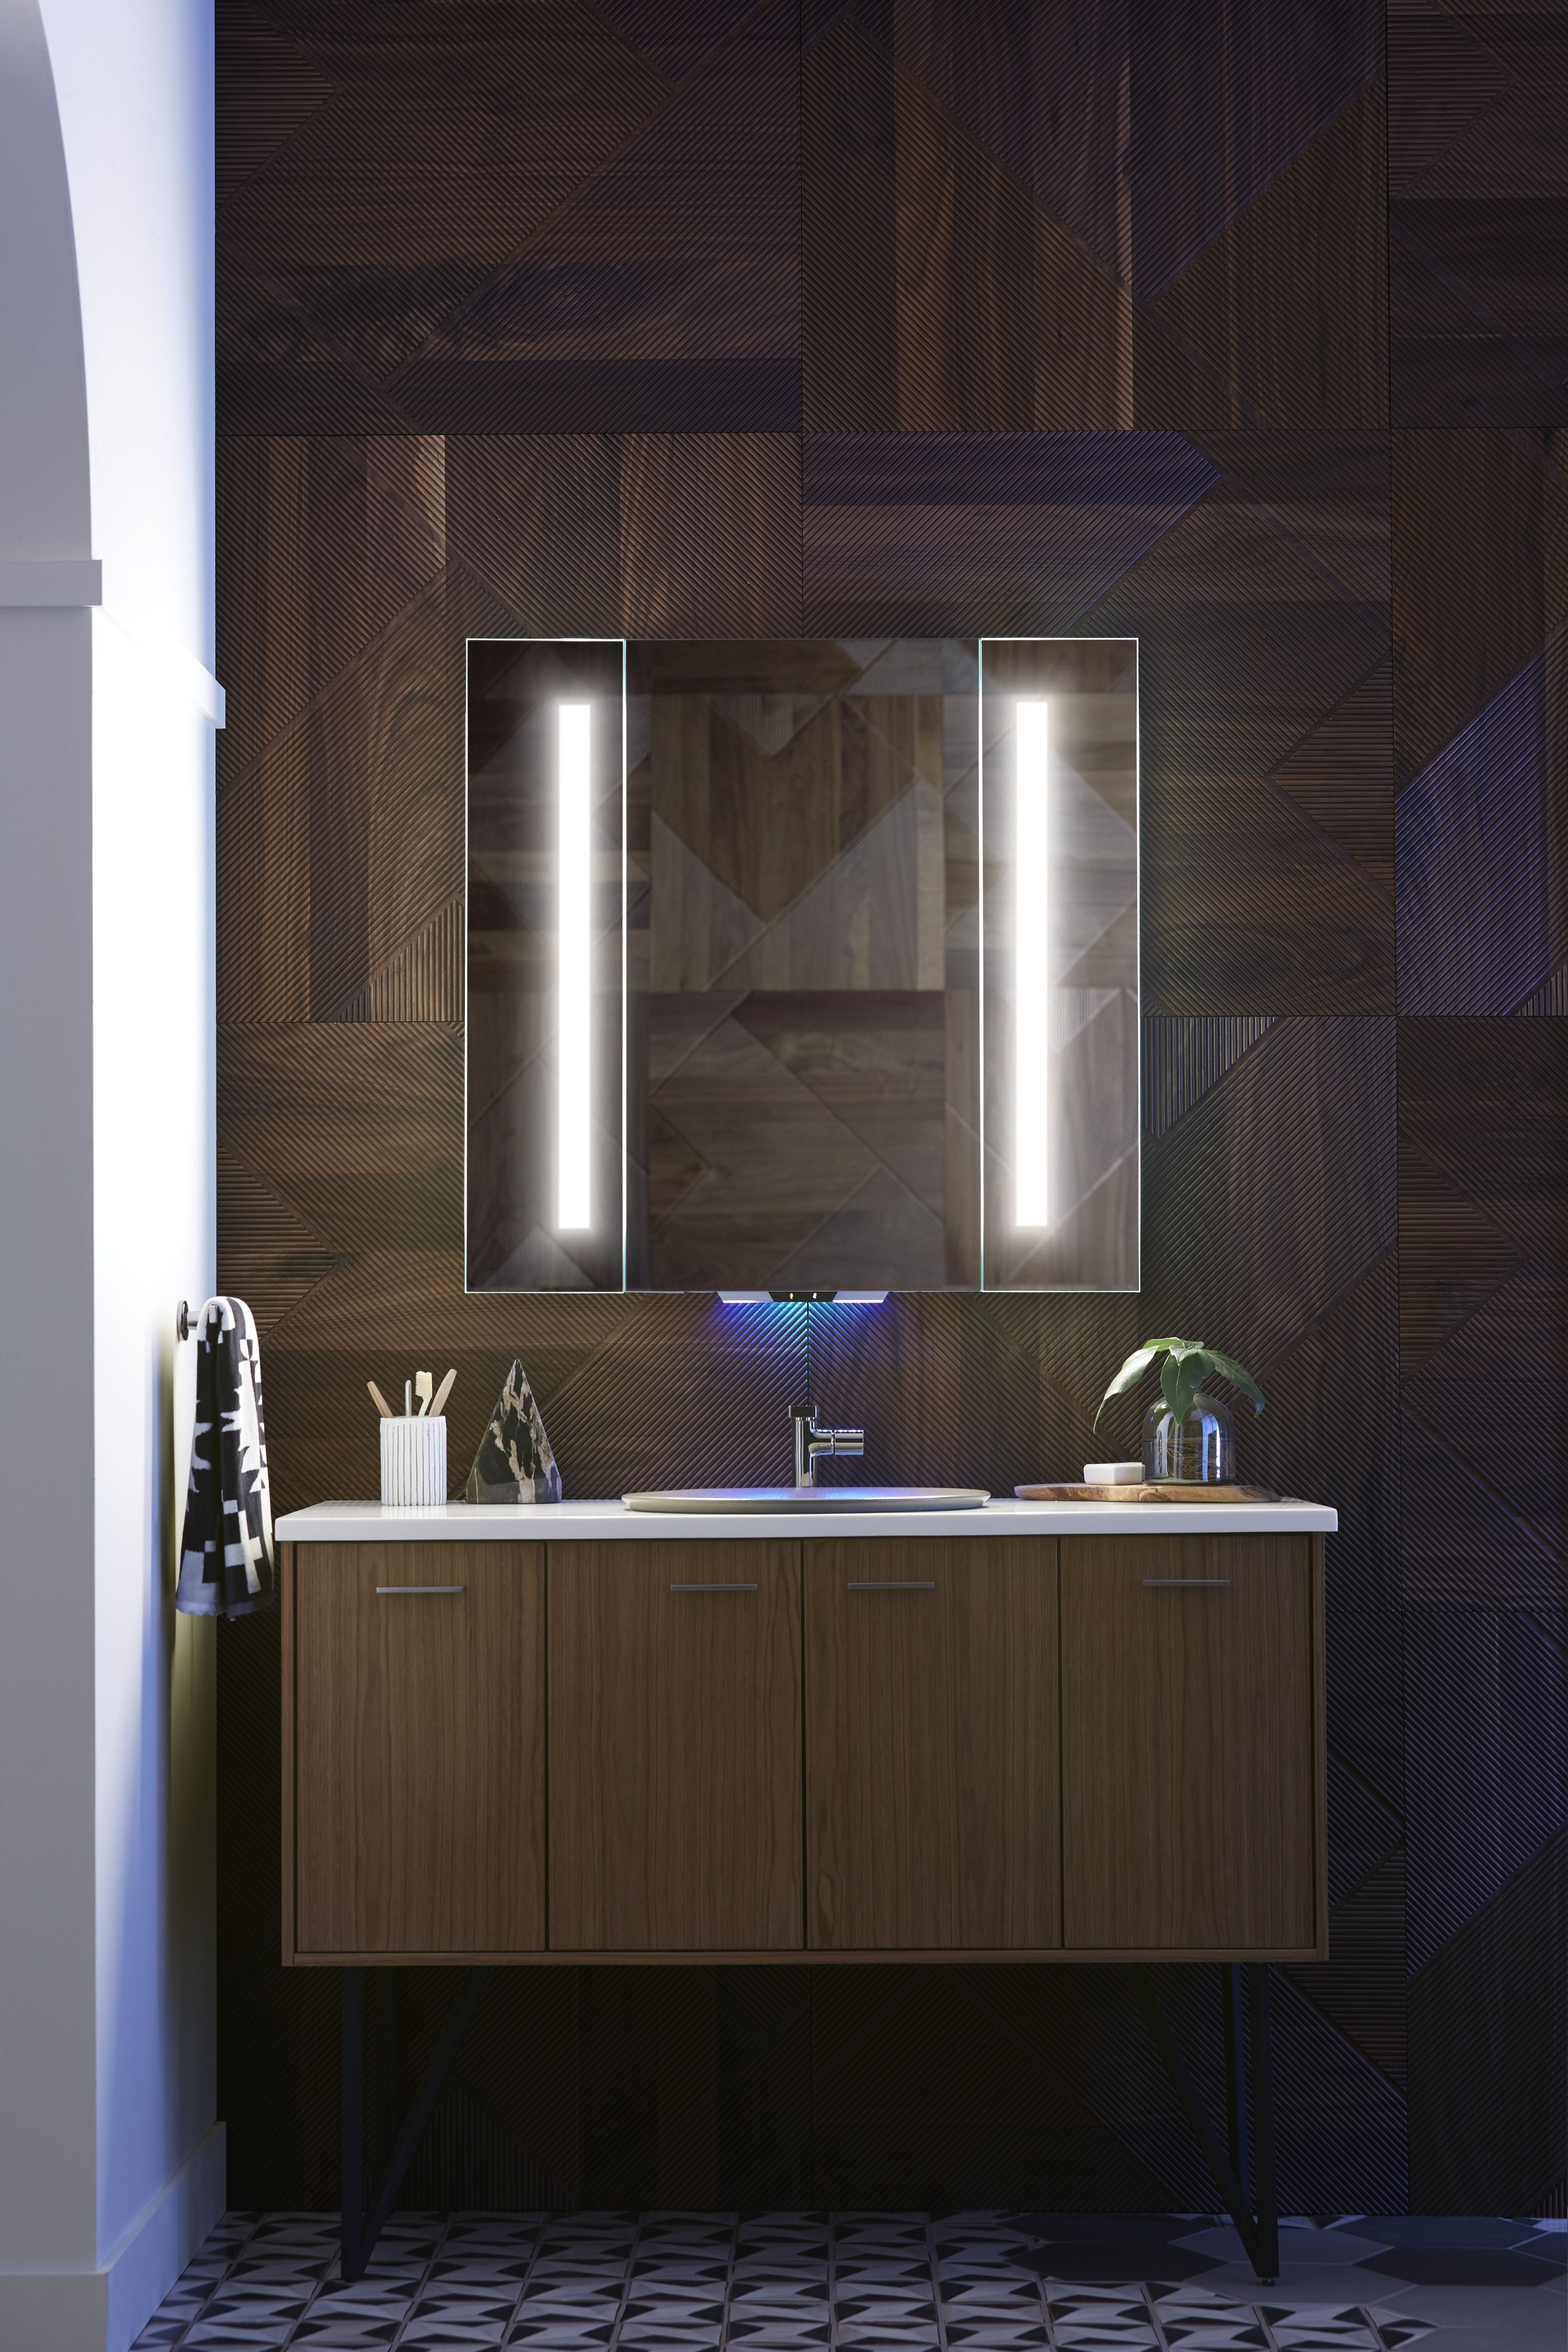 Verdera Voice Lighted Mirror With Amazon Alexa Tech Home Home Technology Mirror With Lights [ 4500 x 3000 Pixel ]